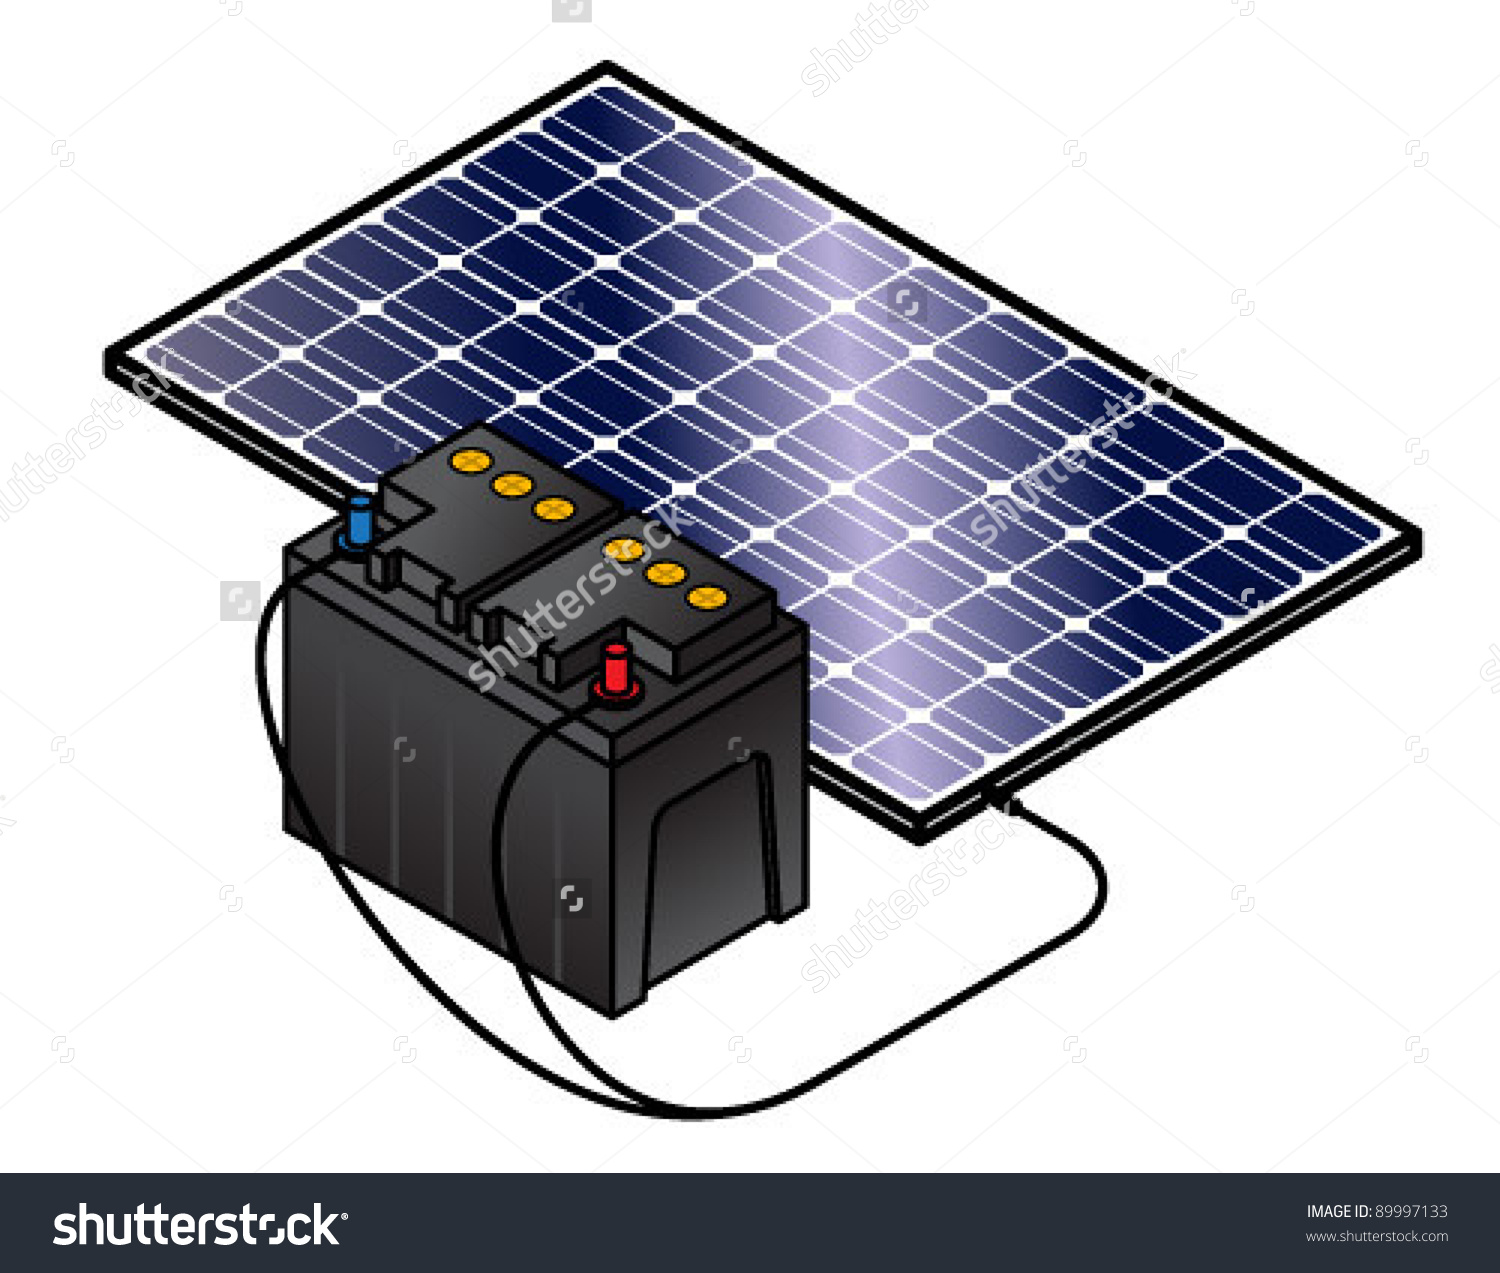 lead storage battery clipart